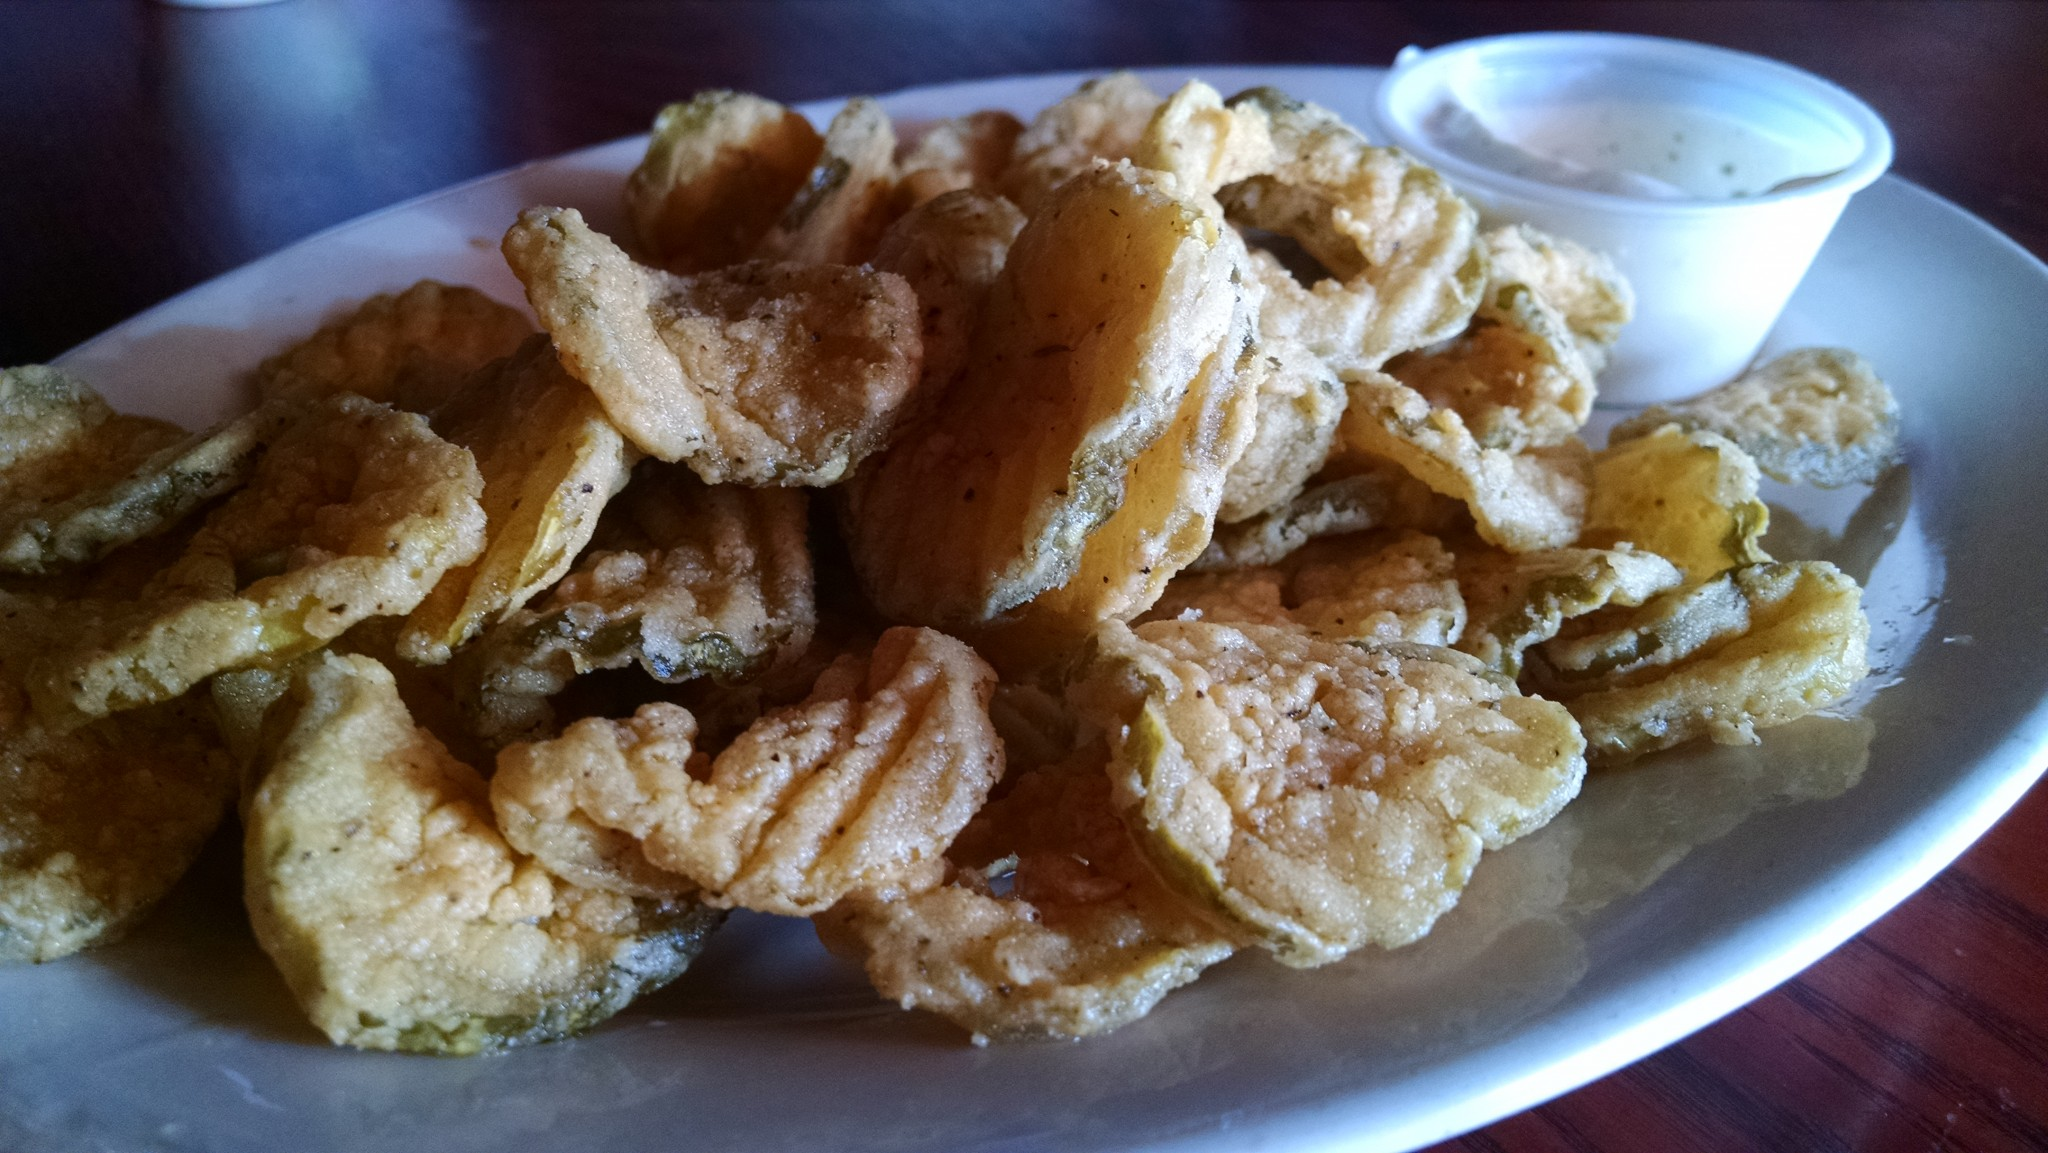 Duckworth's - Fried Pickles